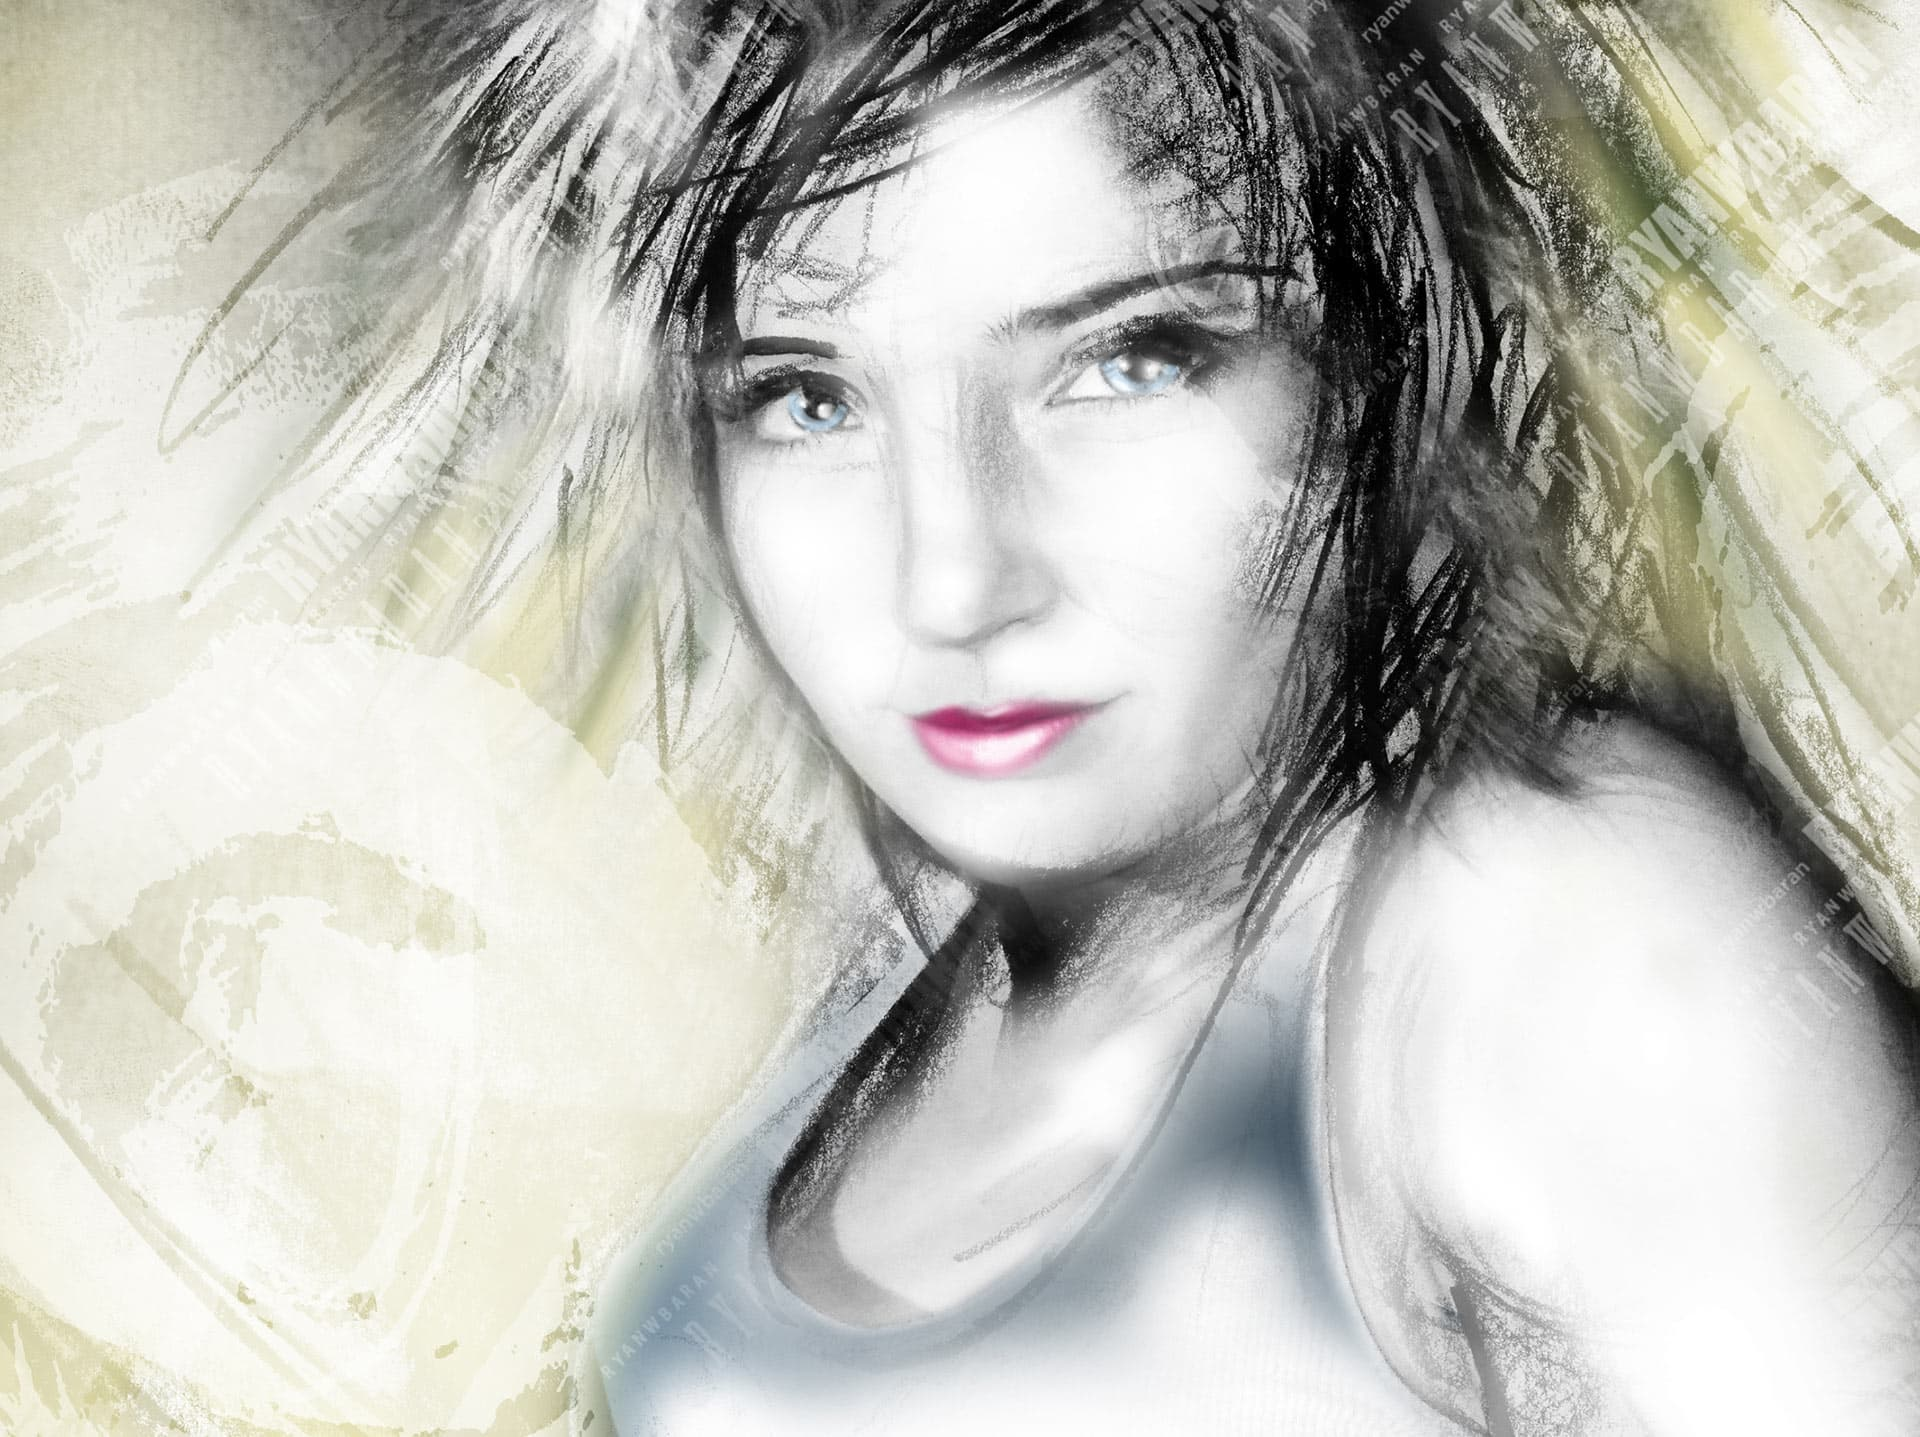 luv1-mixed-portrait-amourbliss